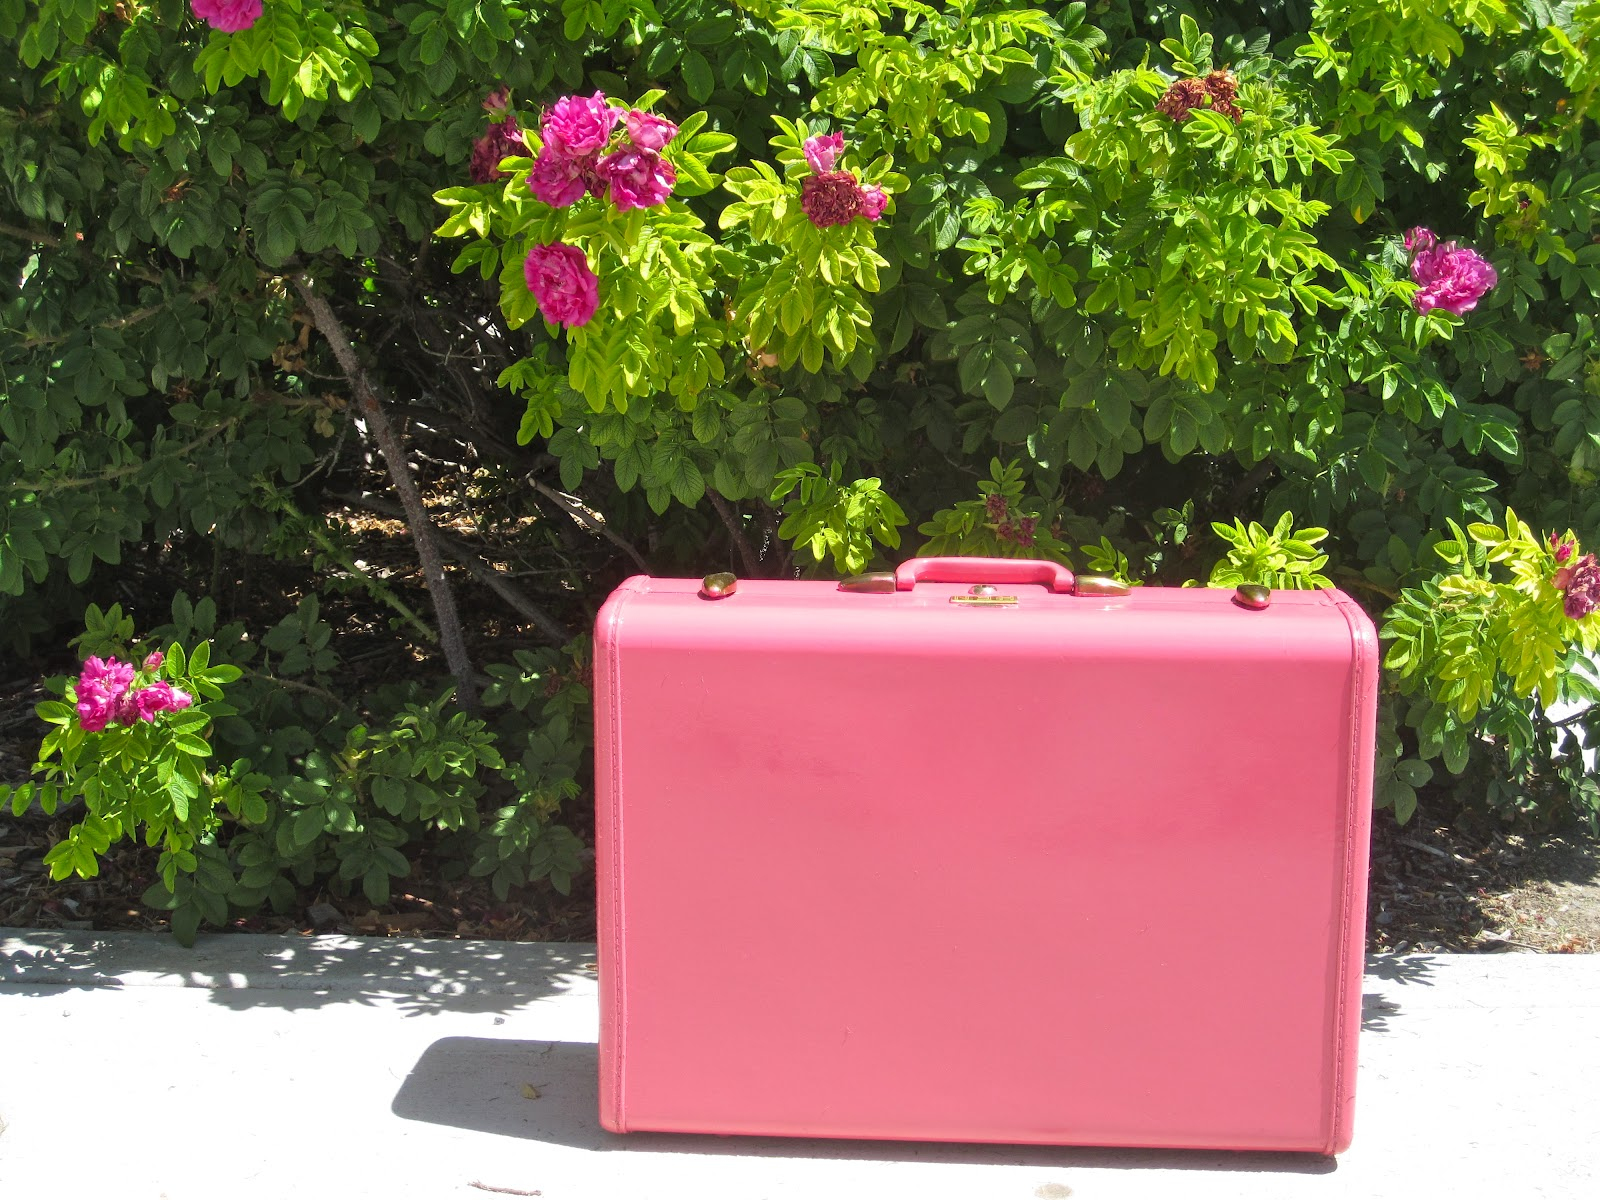 DIY vintage suitcase repainted in pink